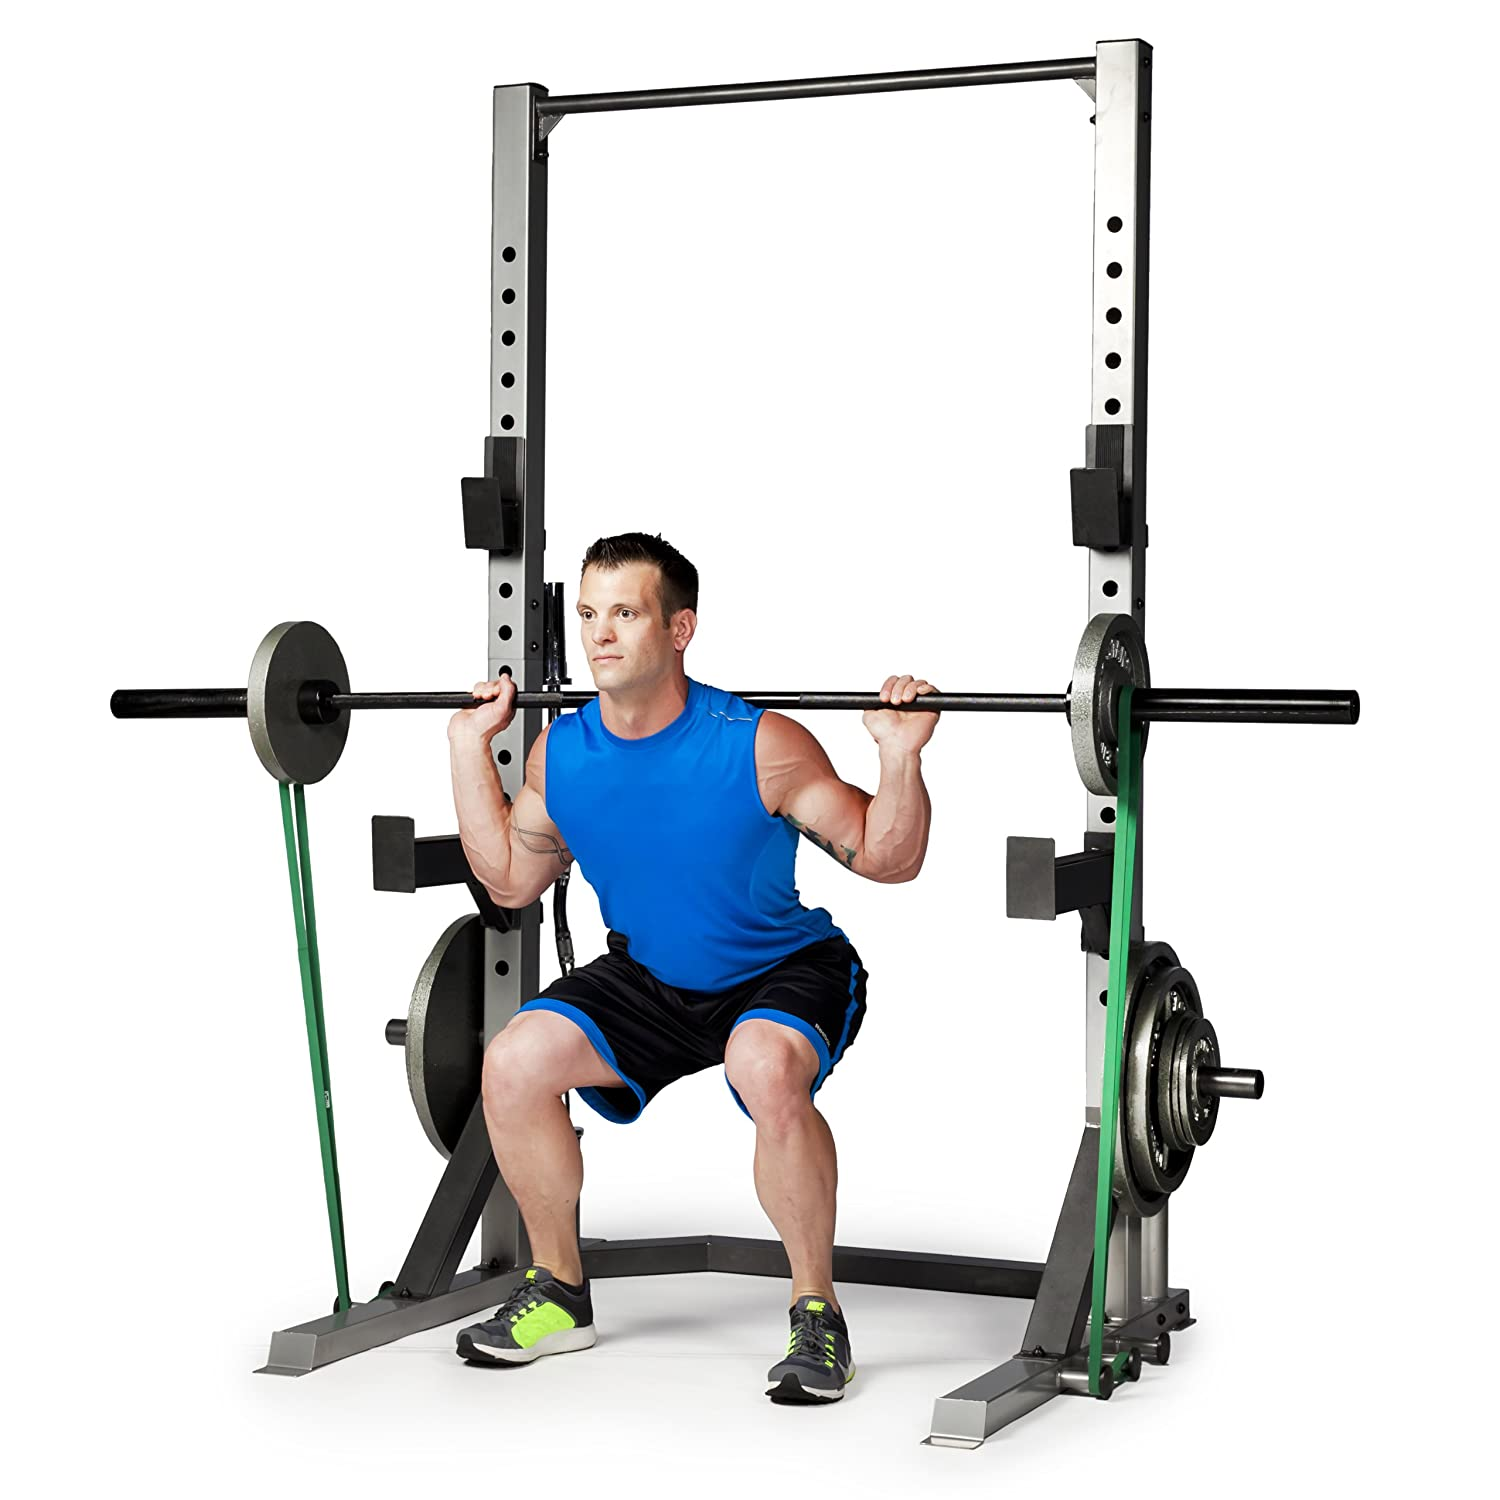 squat products rack press choice best product black standard piece barbell shop adjustable bestchoiceproducts bench steel rakuten